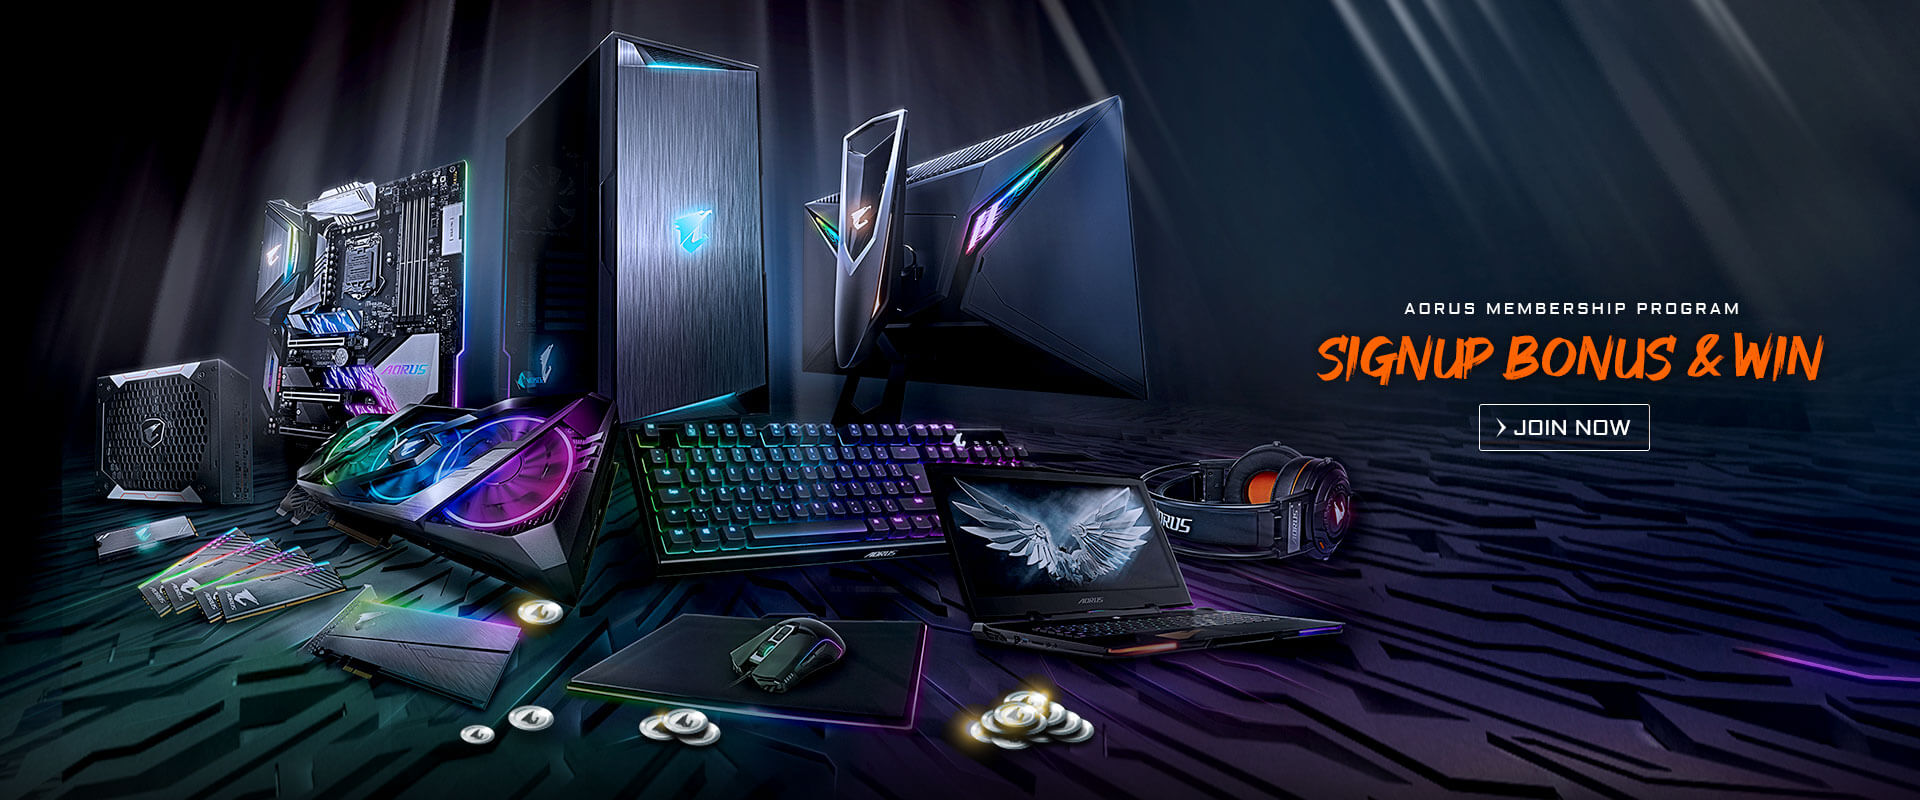 AORUS Membership Program - SIGNUP BONUS & WIN